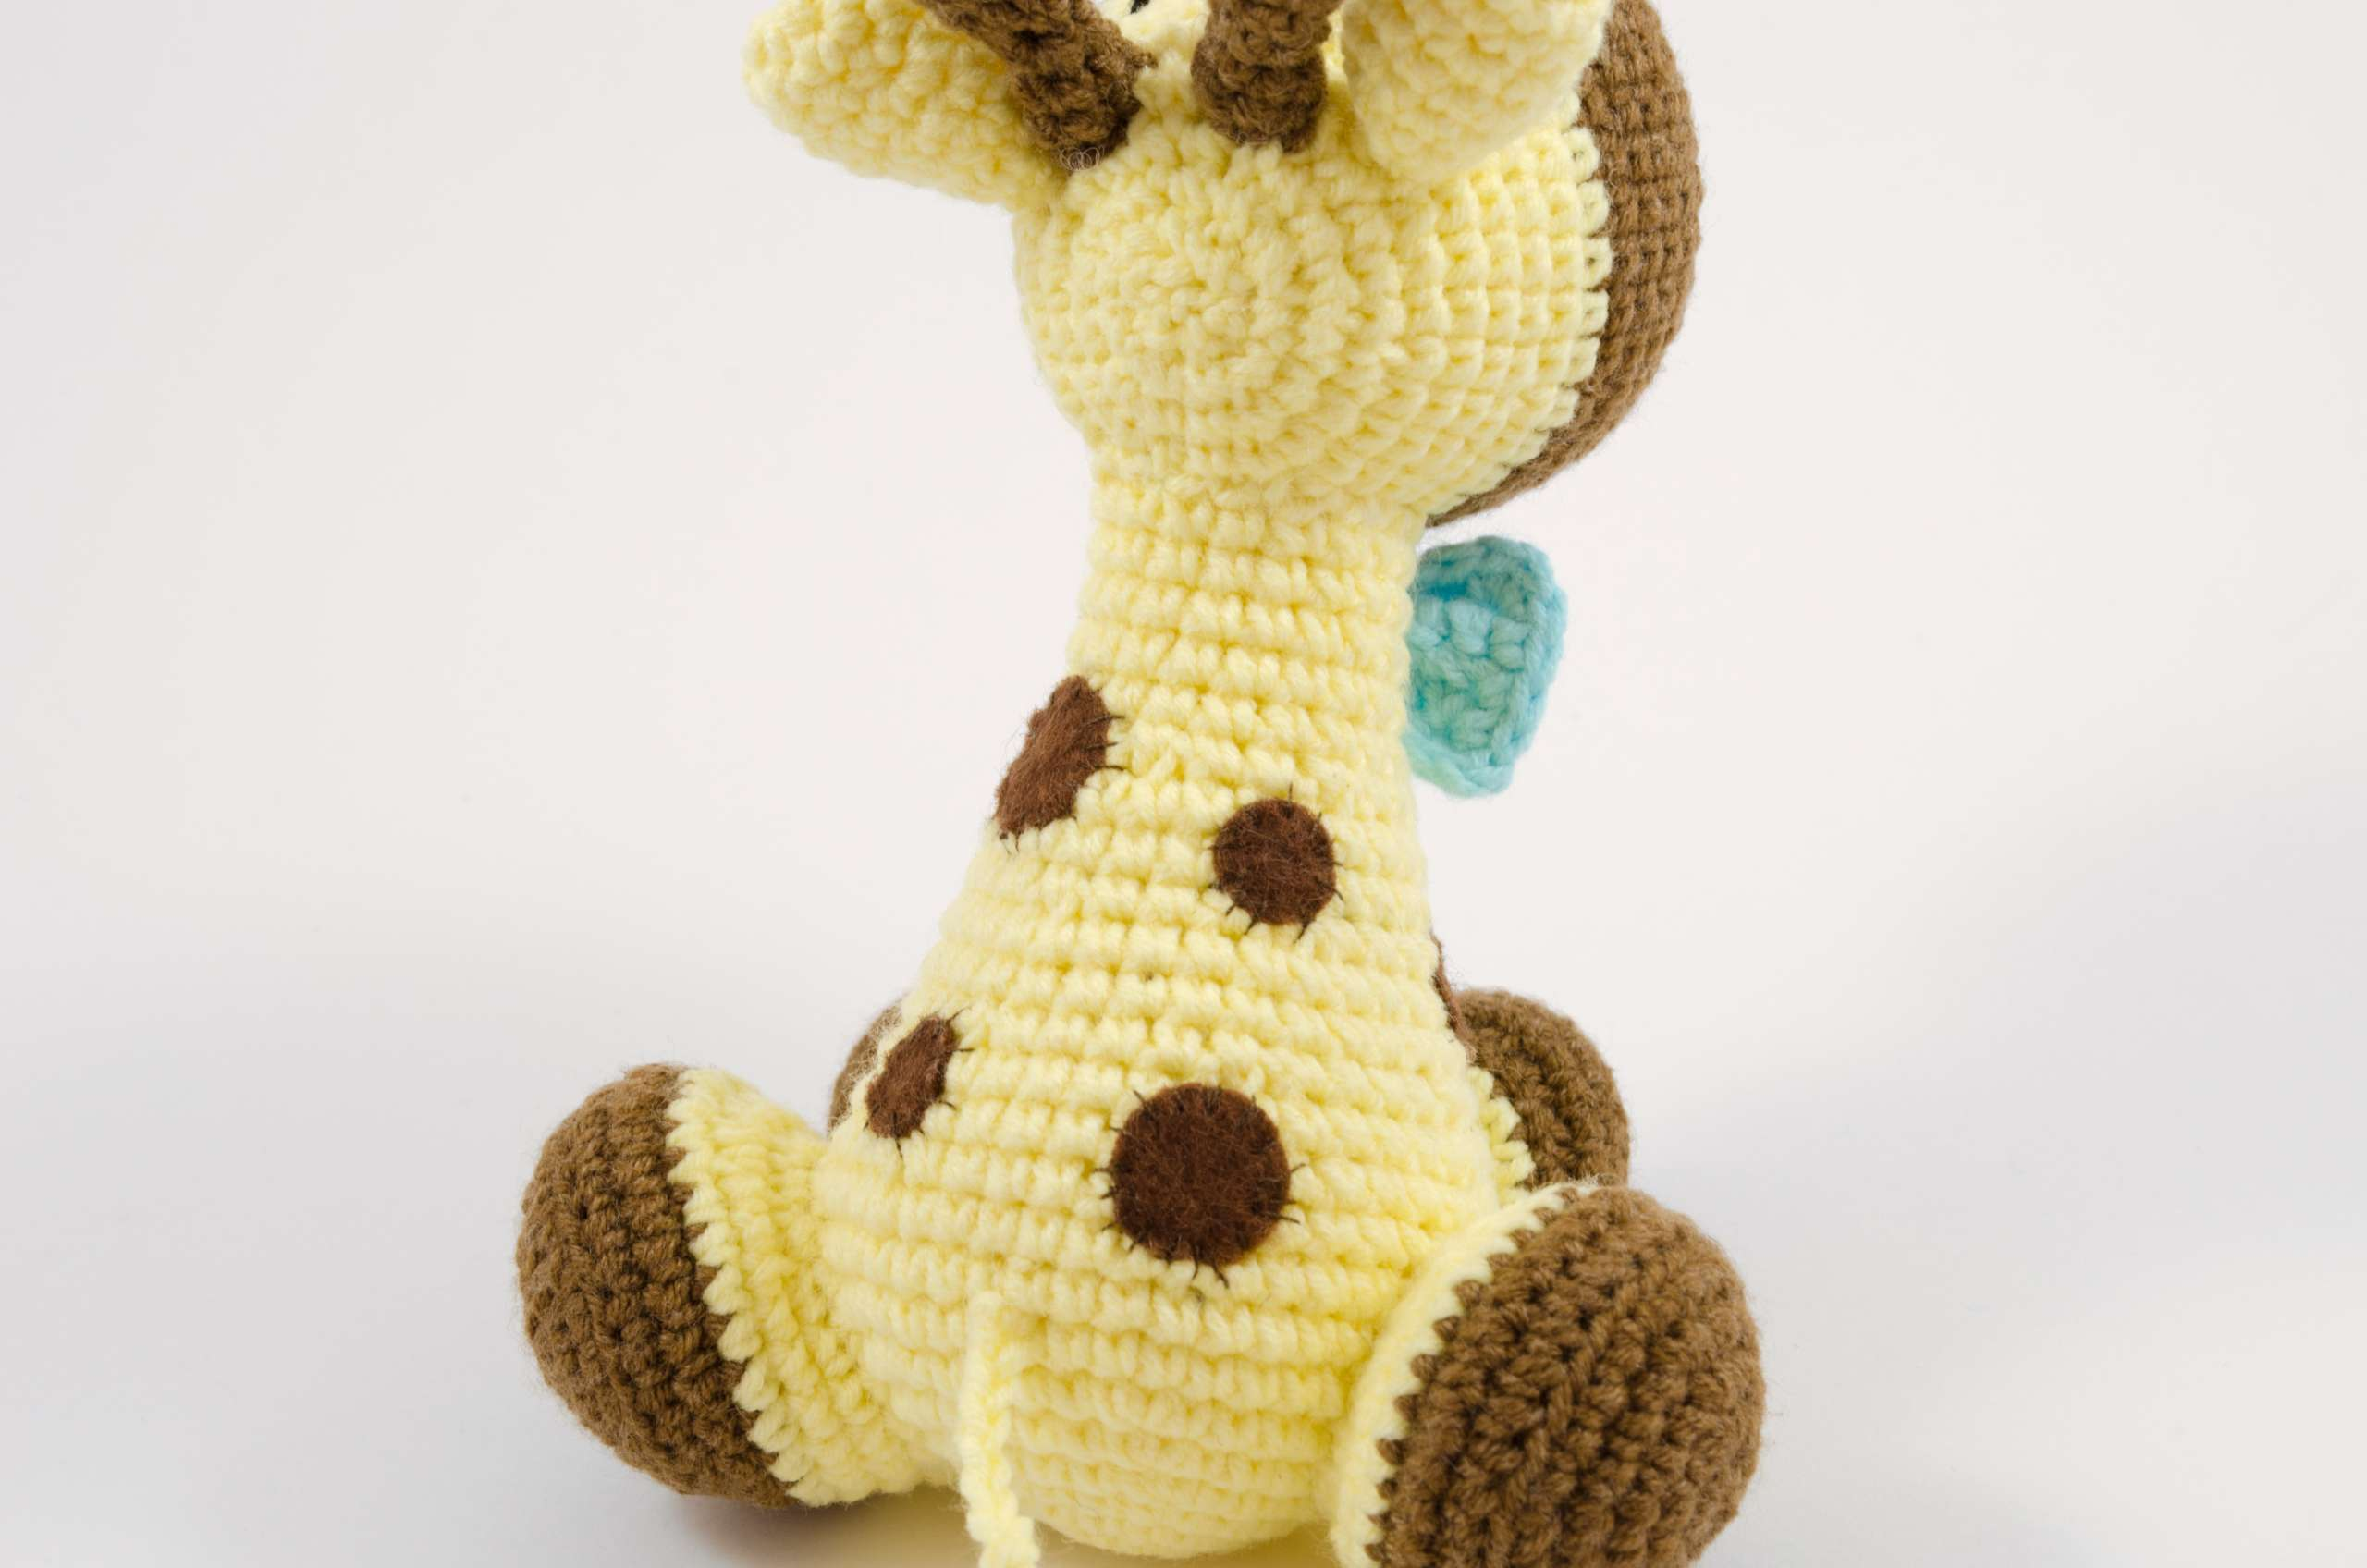 crochet giraffe back view